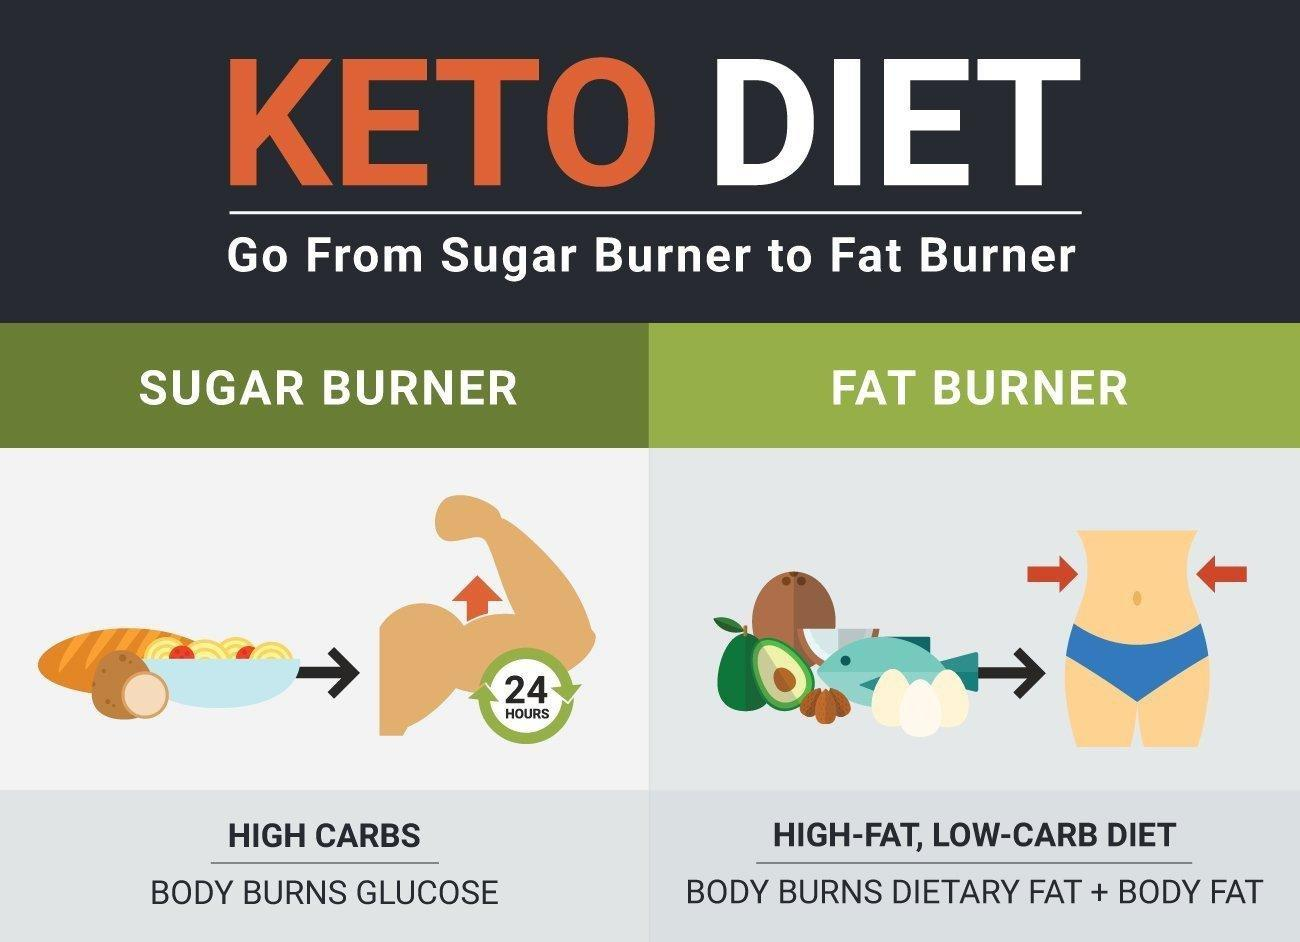 Ketogenic Diet Benefits For Weight Loss, Fighting Disease & More